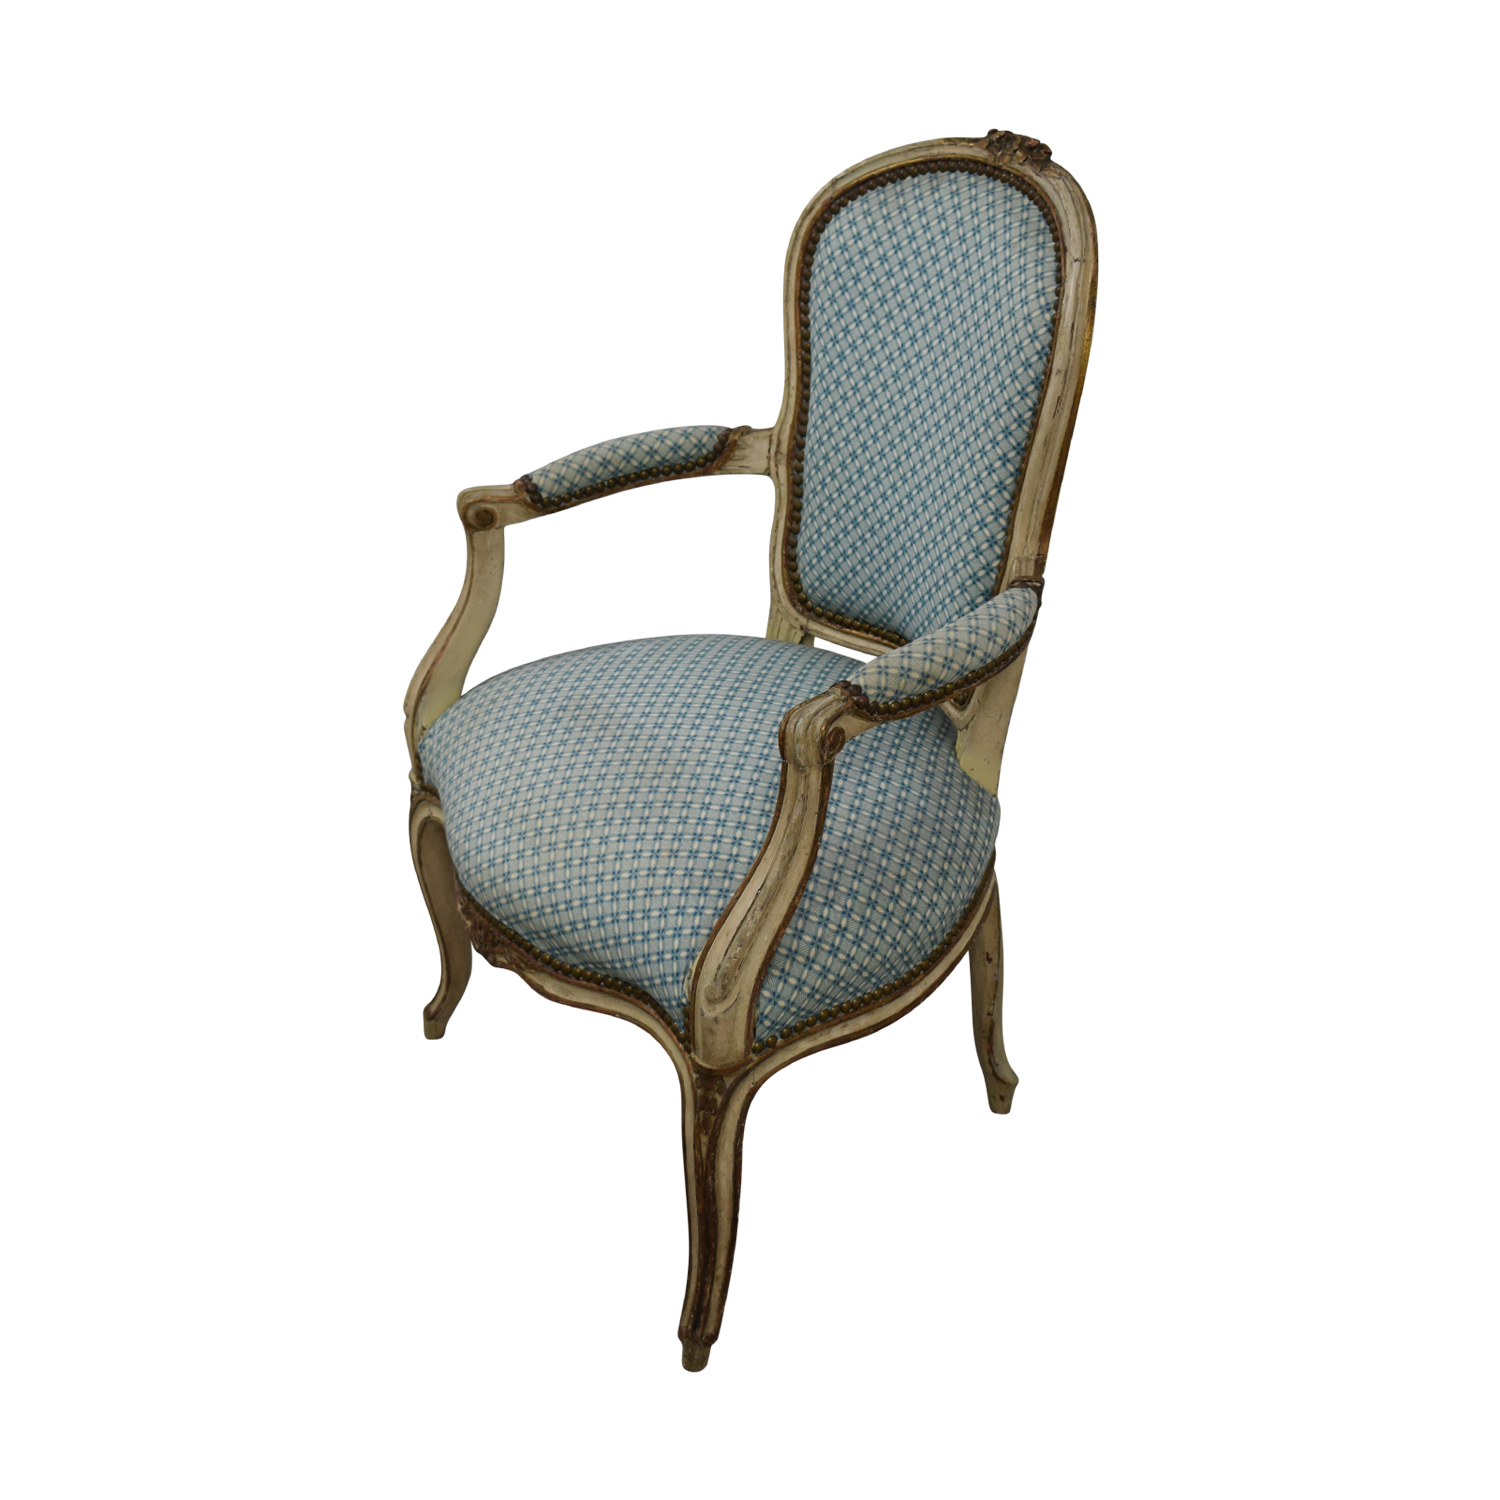 Pleasing 84 Off Furniture Masters Furniture Masters Blue And White Accent Chairs Chairs Ibusinesslaw Wood Chair Design Ideas Ibusinesslaworg